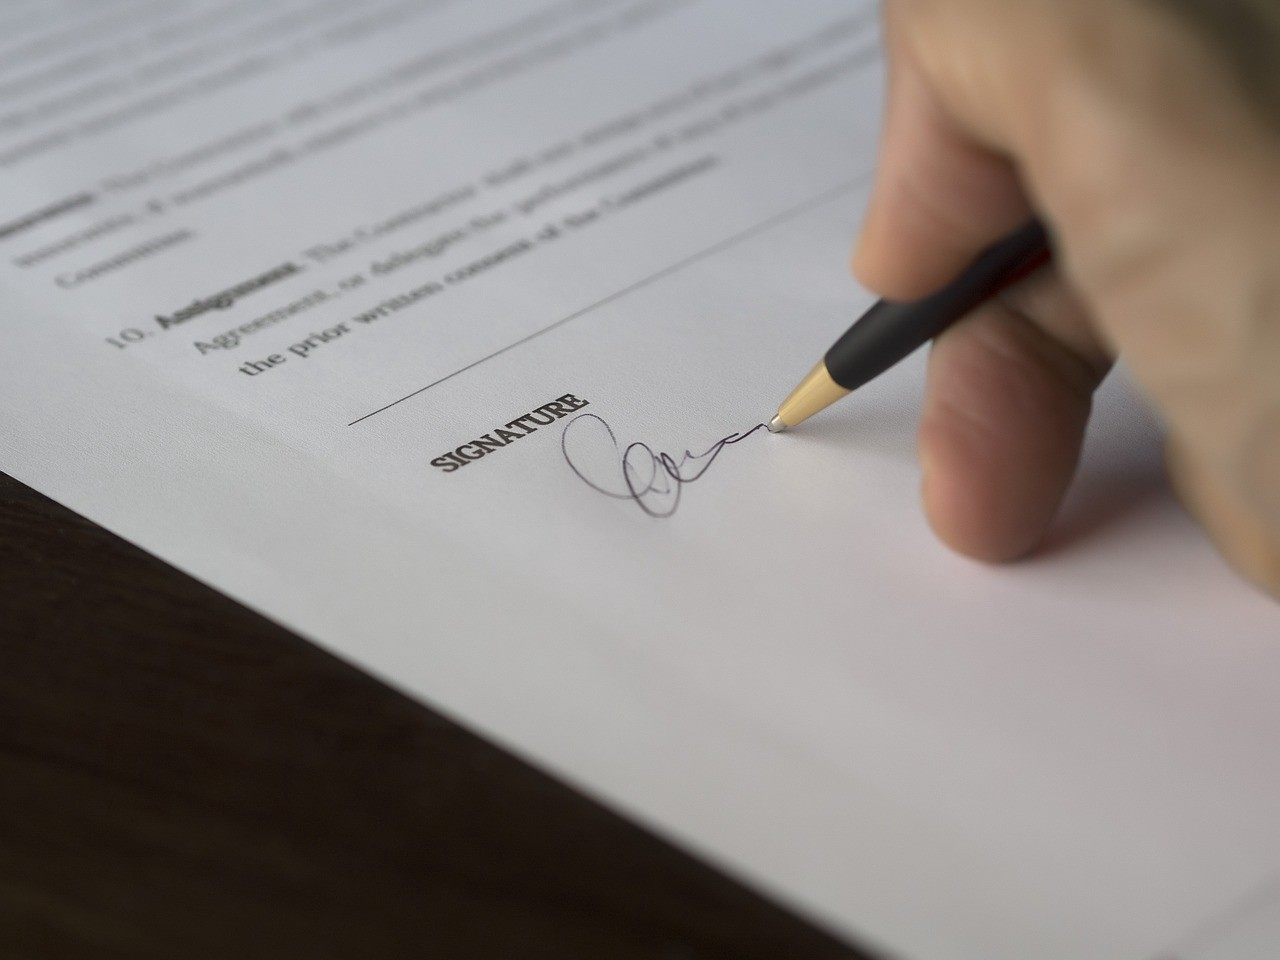 The Top 5 Advantages of Digital Signatures - Keith Krach - Medium